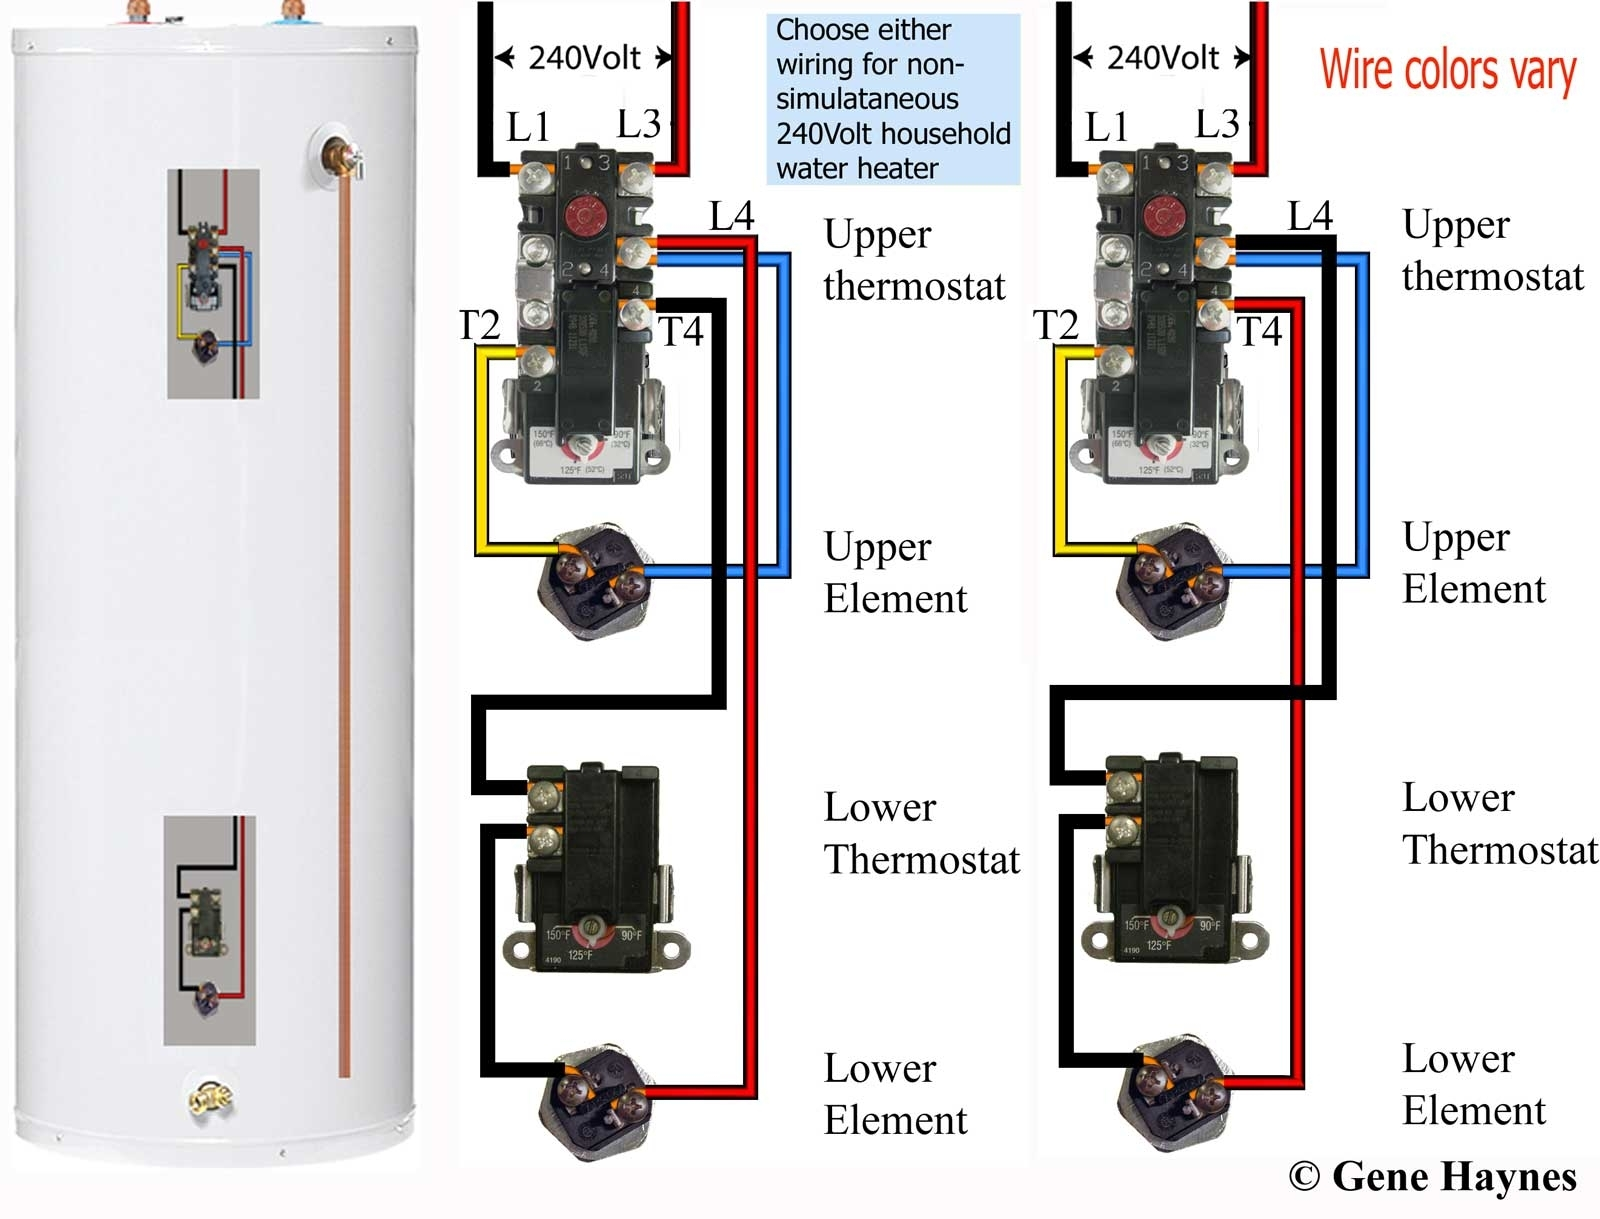 How To Select And Replace Thermostat On Electric Water Heater inside Electric Hot Water Heater Parts Diagram